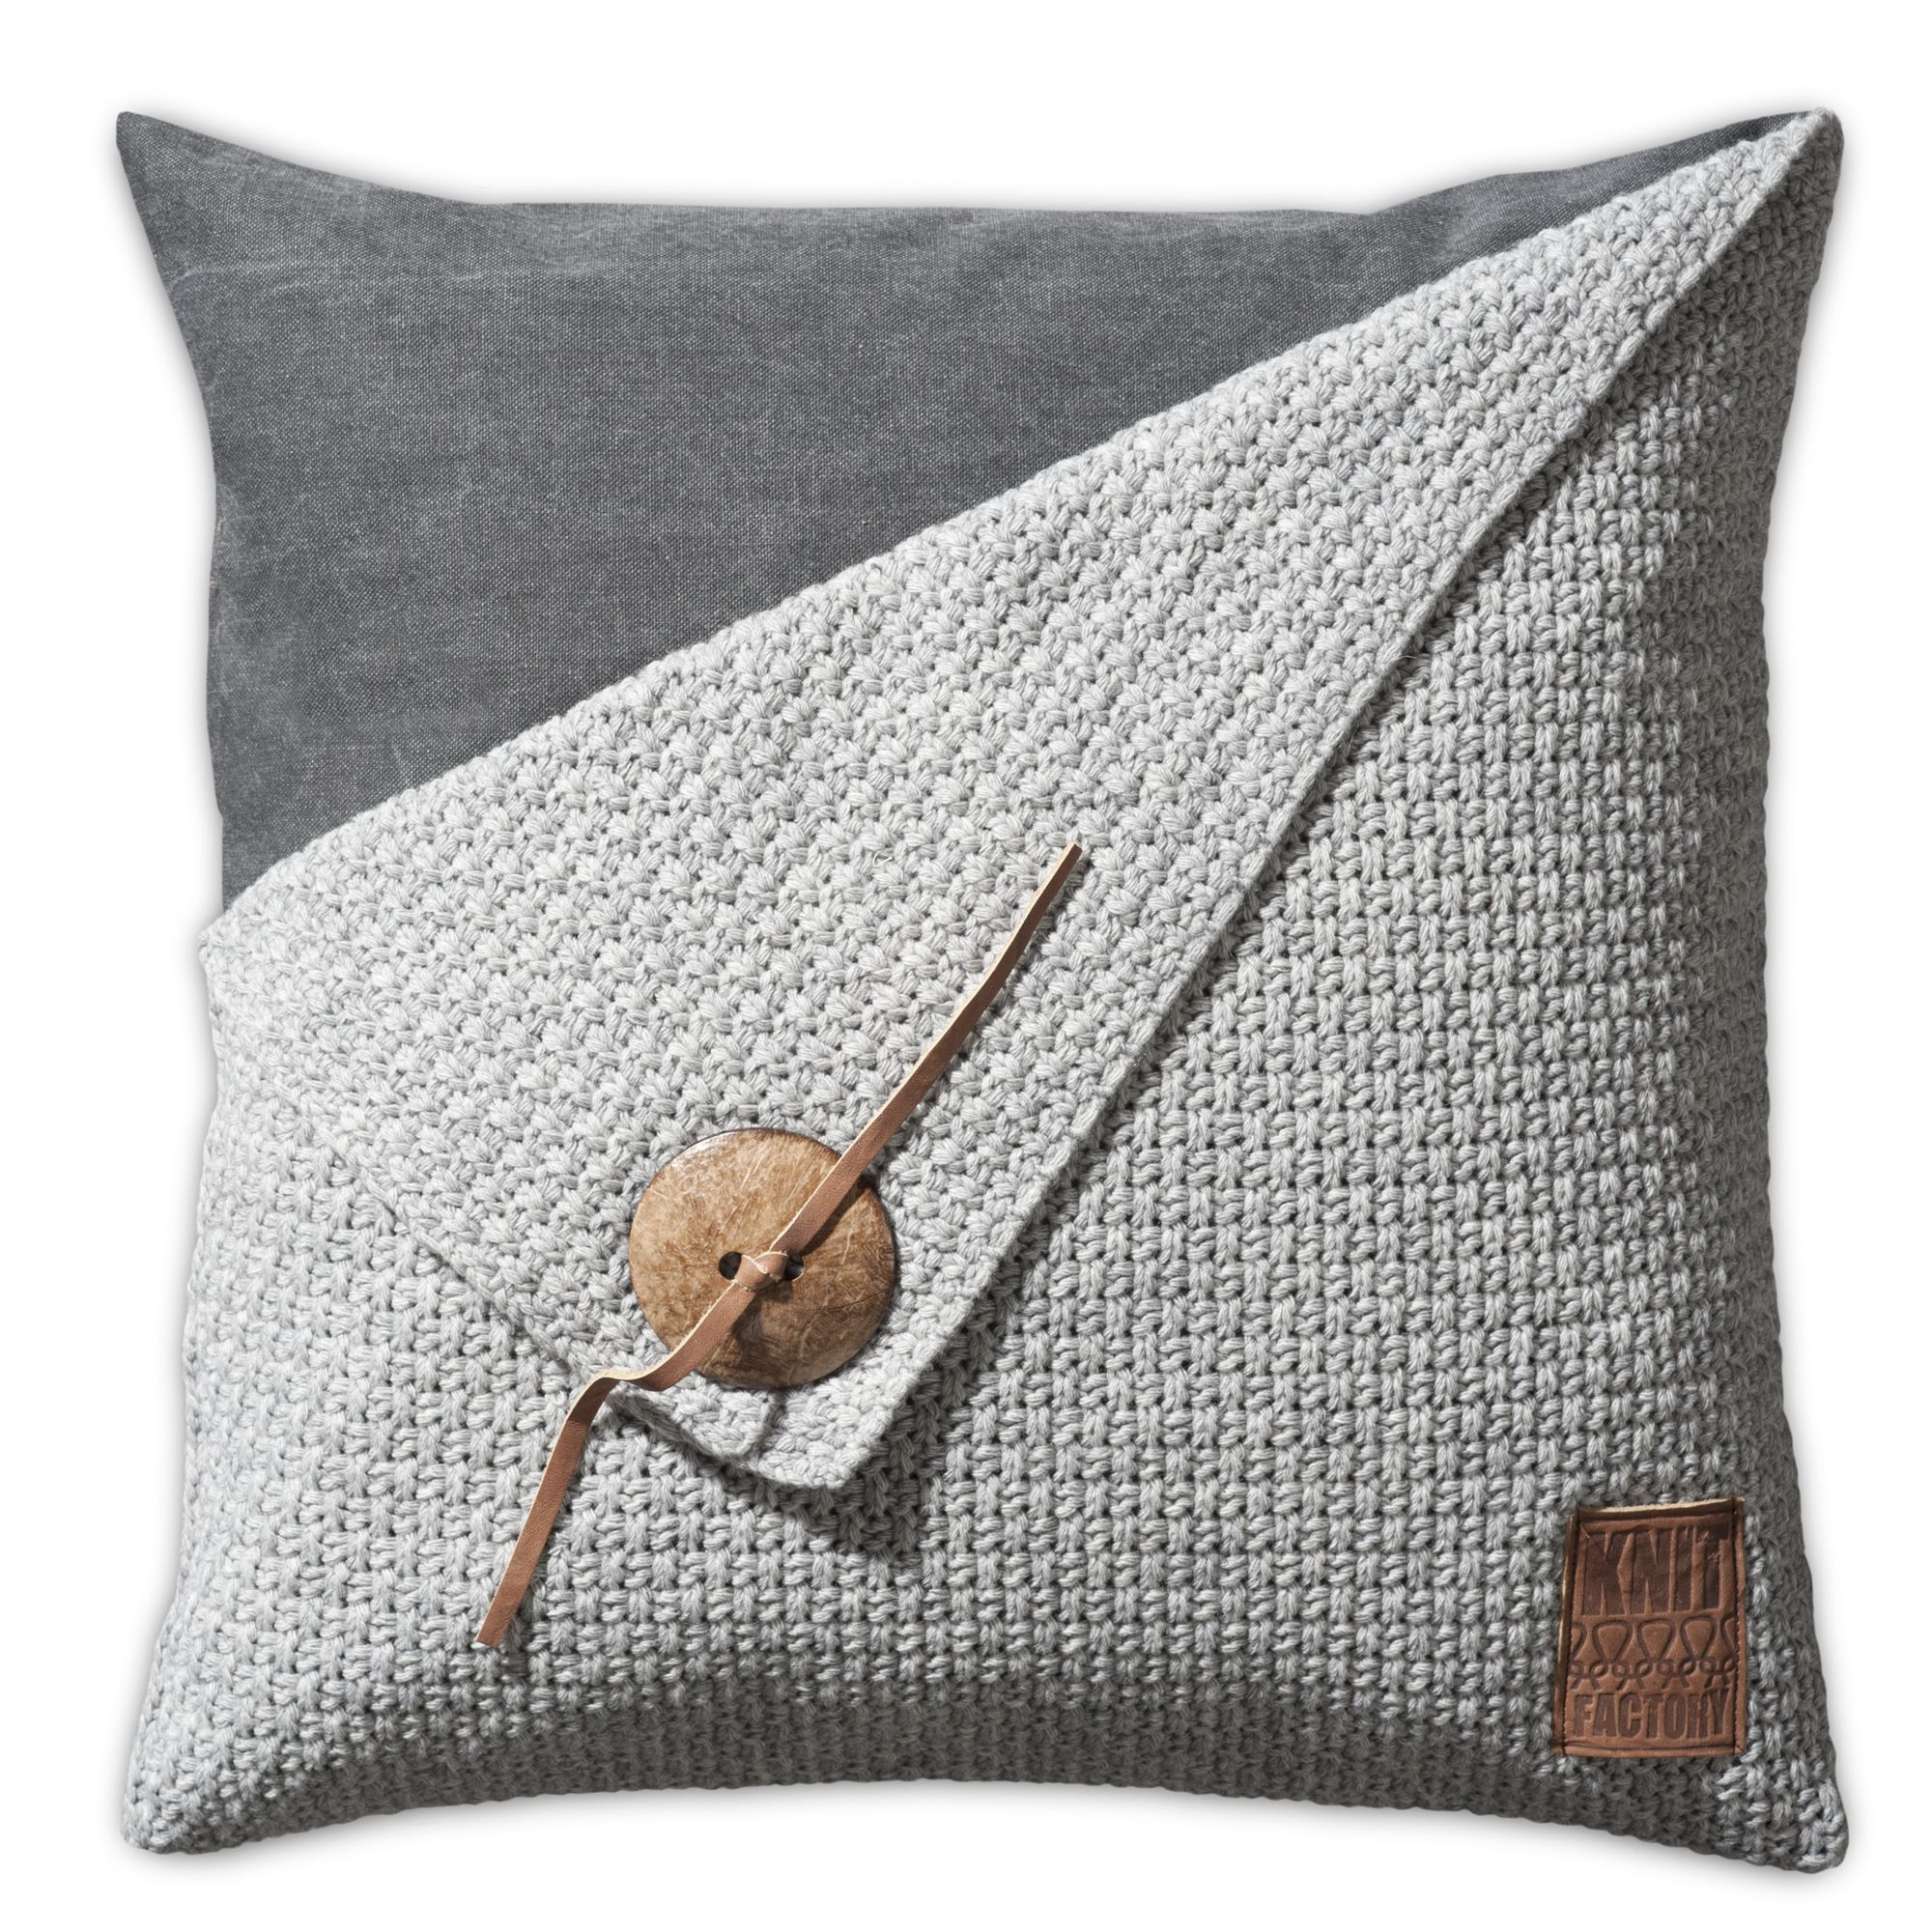 pillow 50x50 gerstekorrel light grey by knit factory pillows pinterest. Black Bedroom Furniture Sets. Home Design Ideas